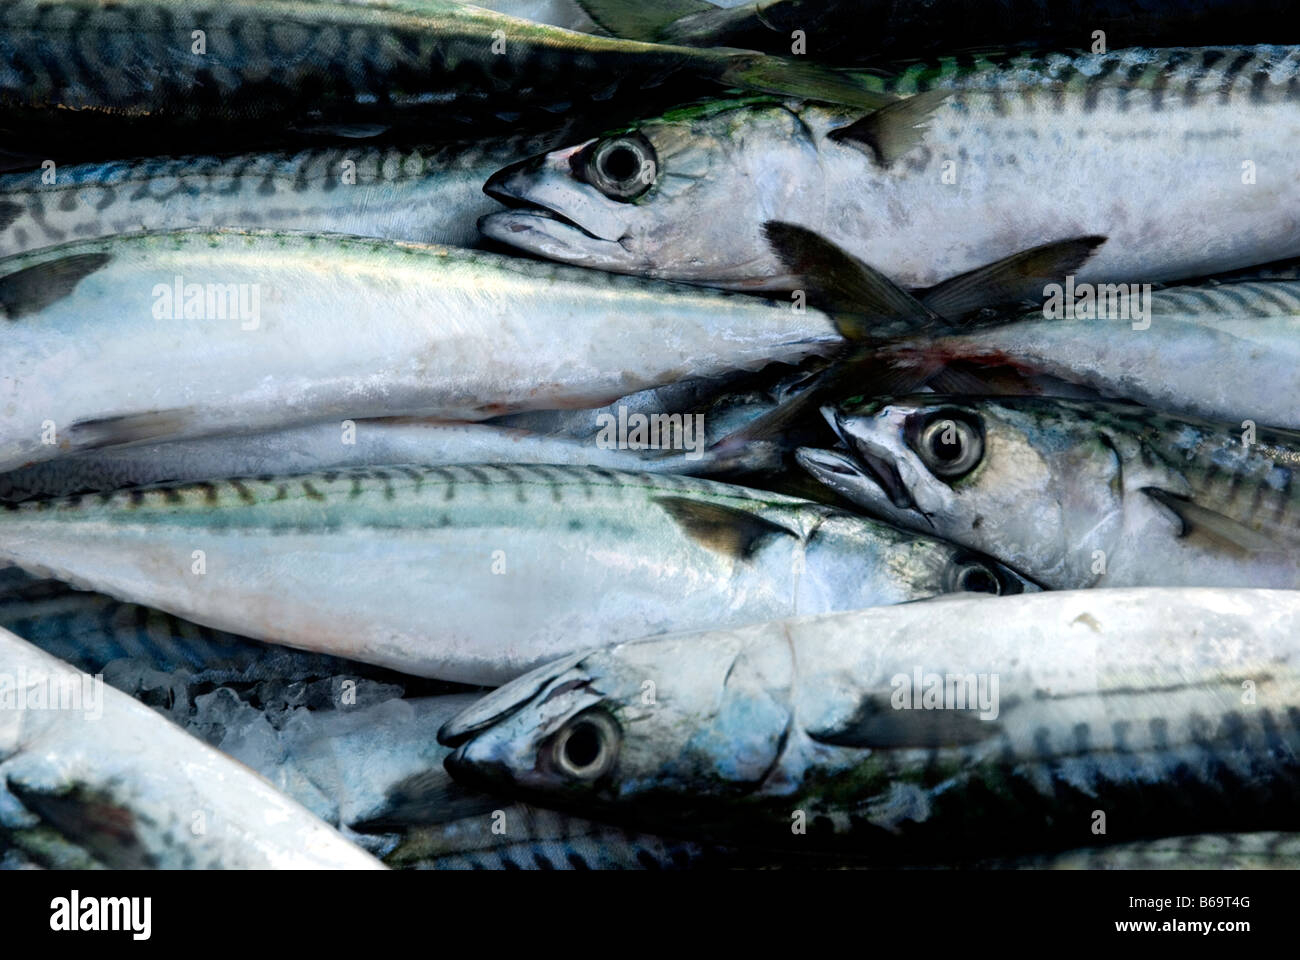 Mackerel for sale at a fish market stock photo royalty for Stock fish for sale